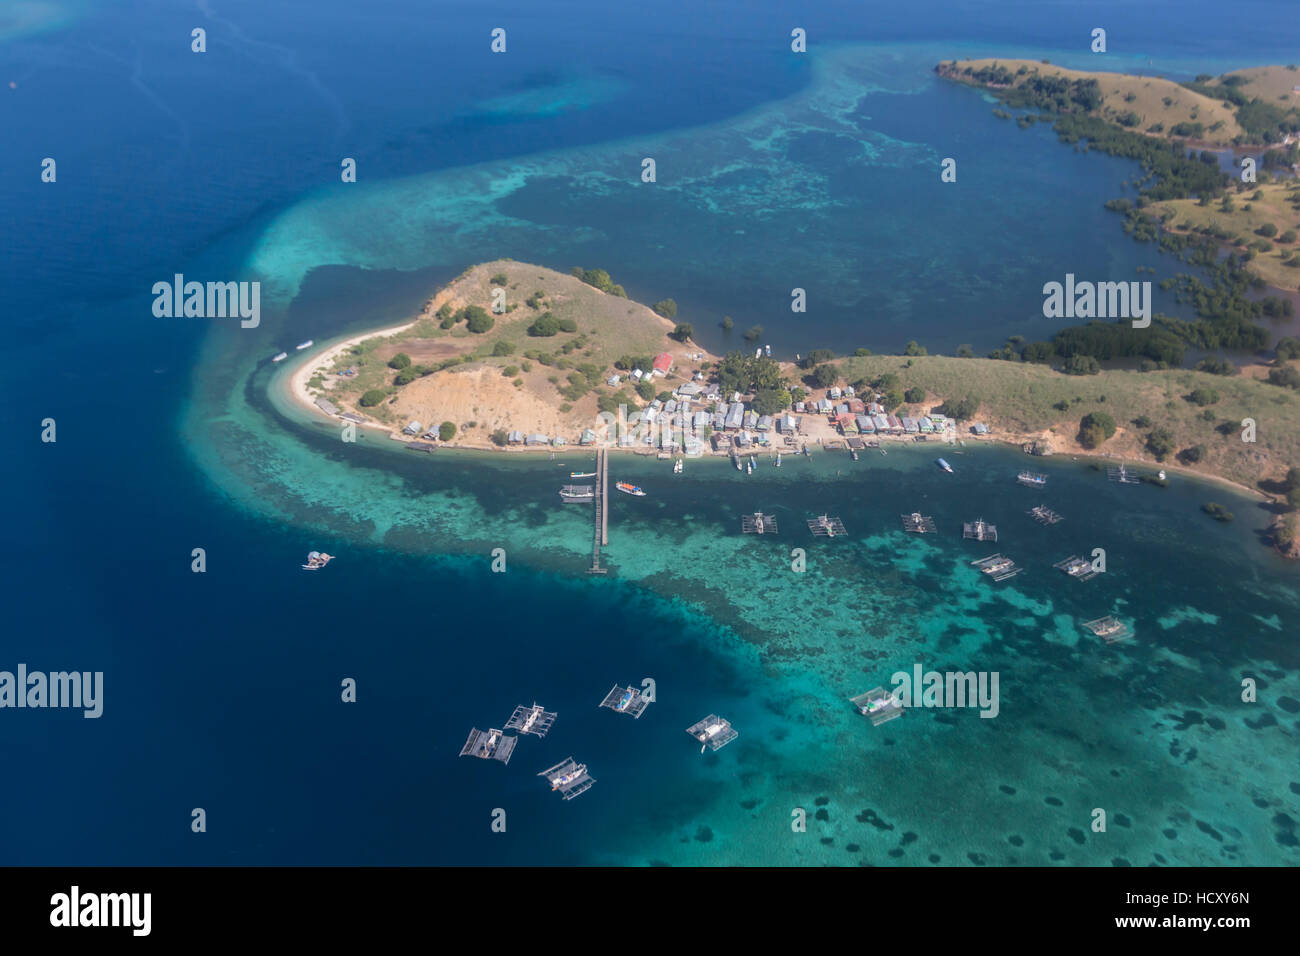 Aerial view of Flores Island from a commercial flight, Flores Sea, Indonesia Stock Photo